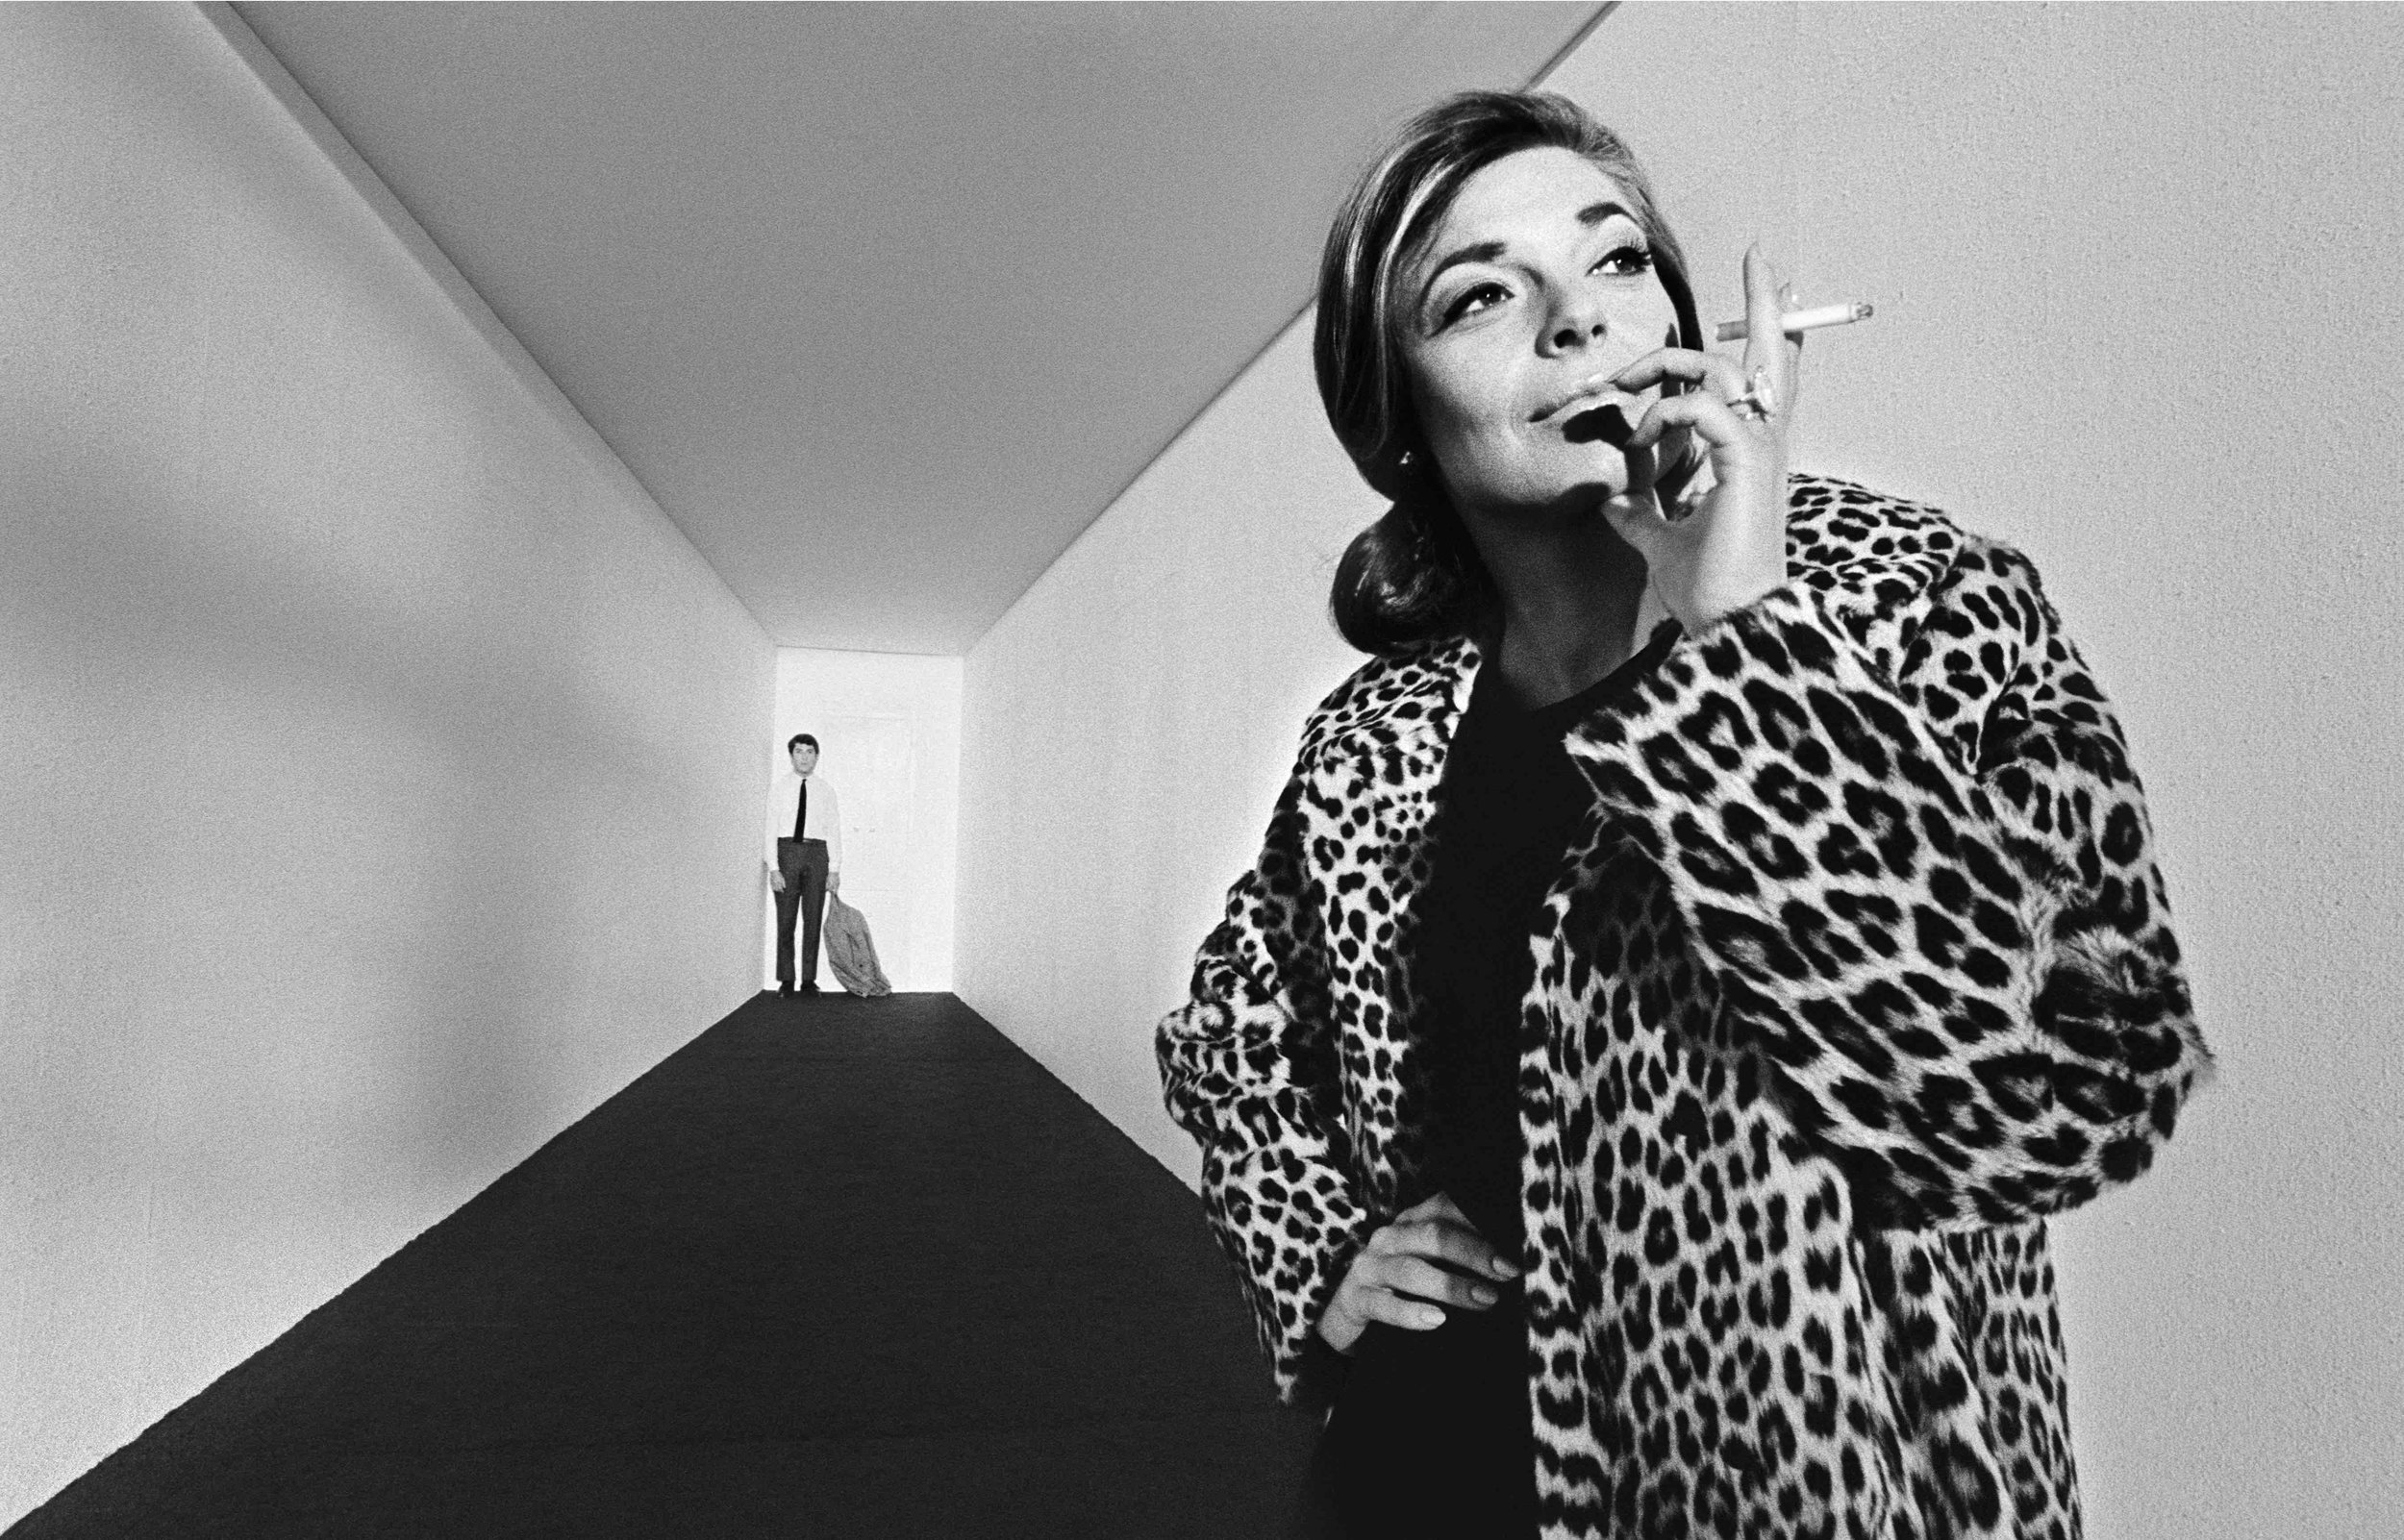 Dustin Hoffman & Anne Bancroft on a specially constructed set on The Graduate, 1967